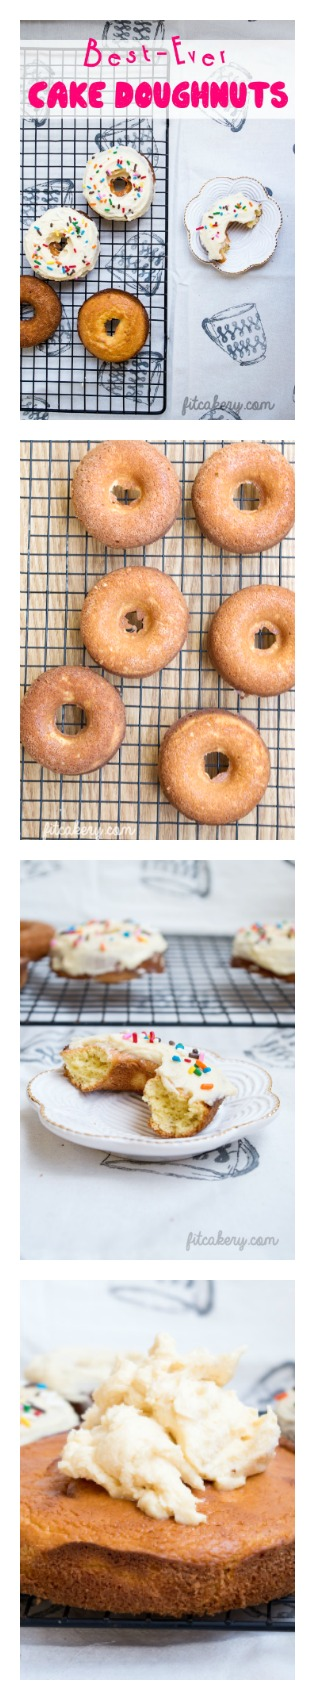 Best-Ever Cake Doughuts | gluten-free, low-carb, high-protein | FitCakery.com